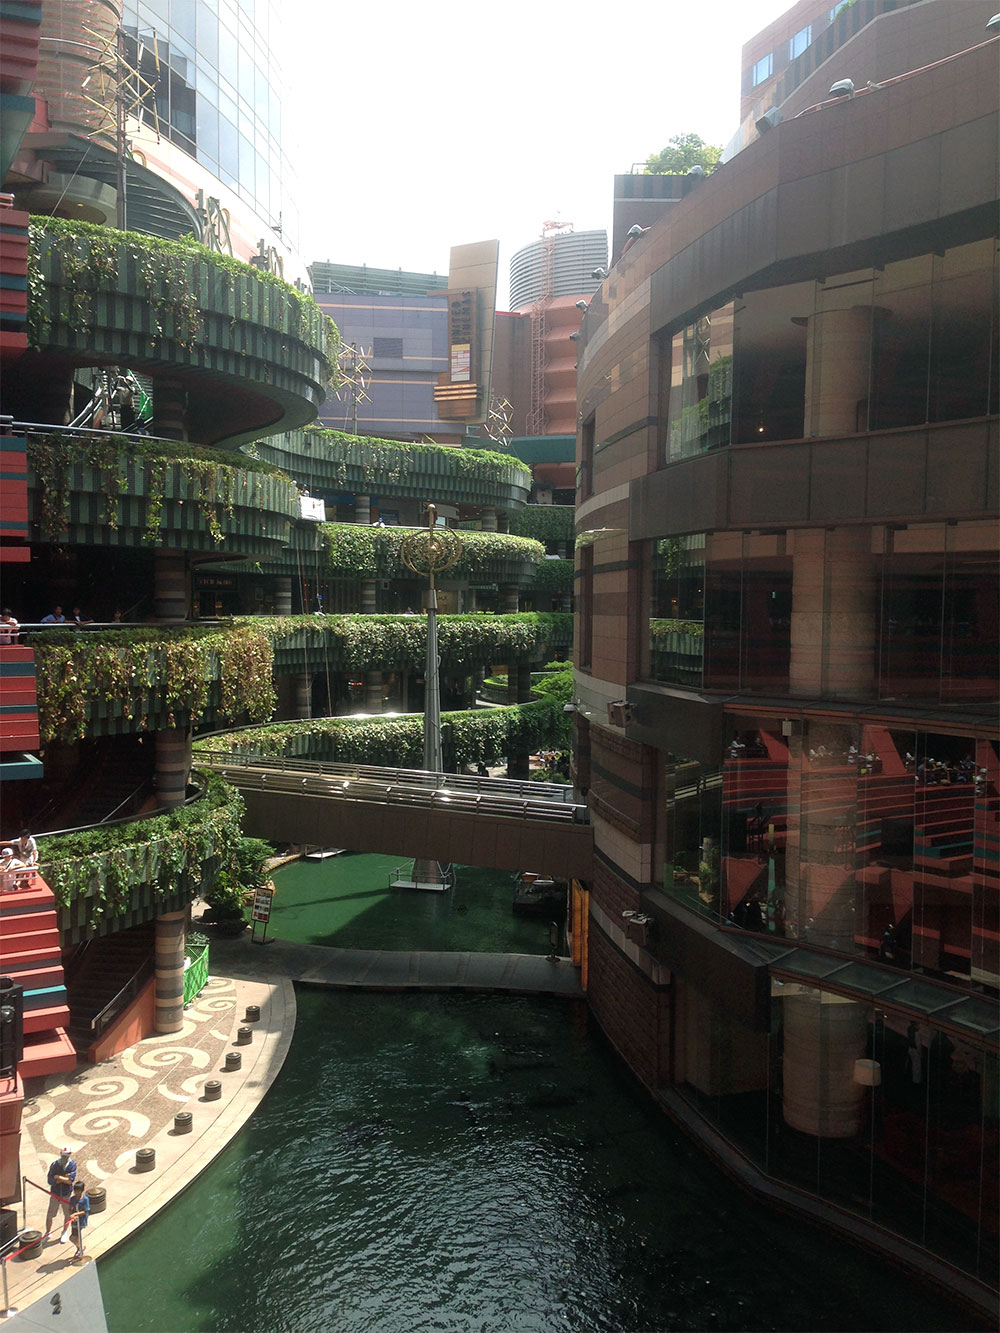 canal-city-2